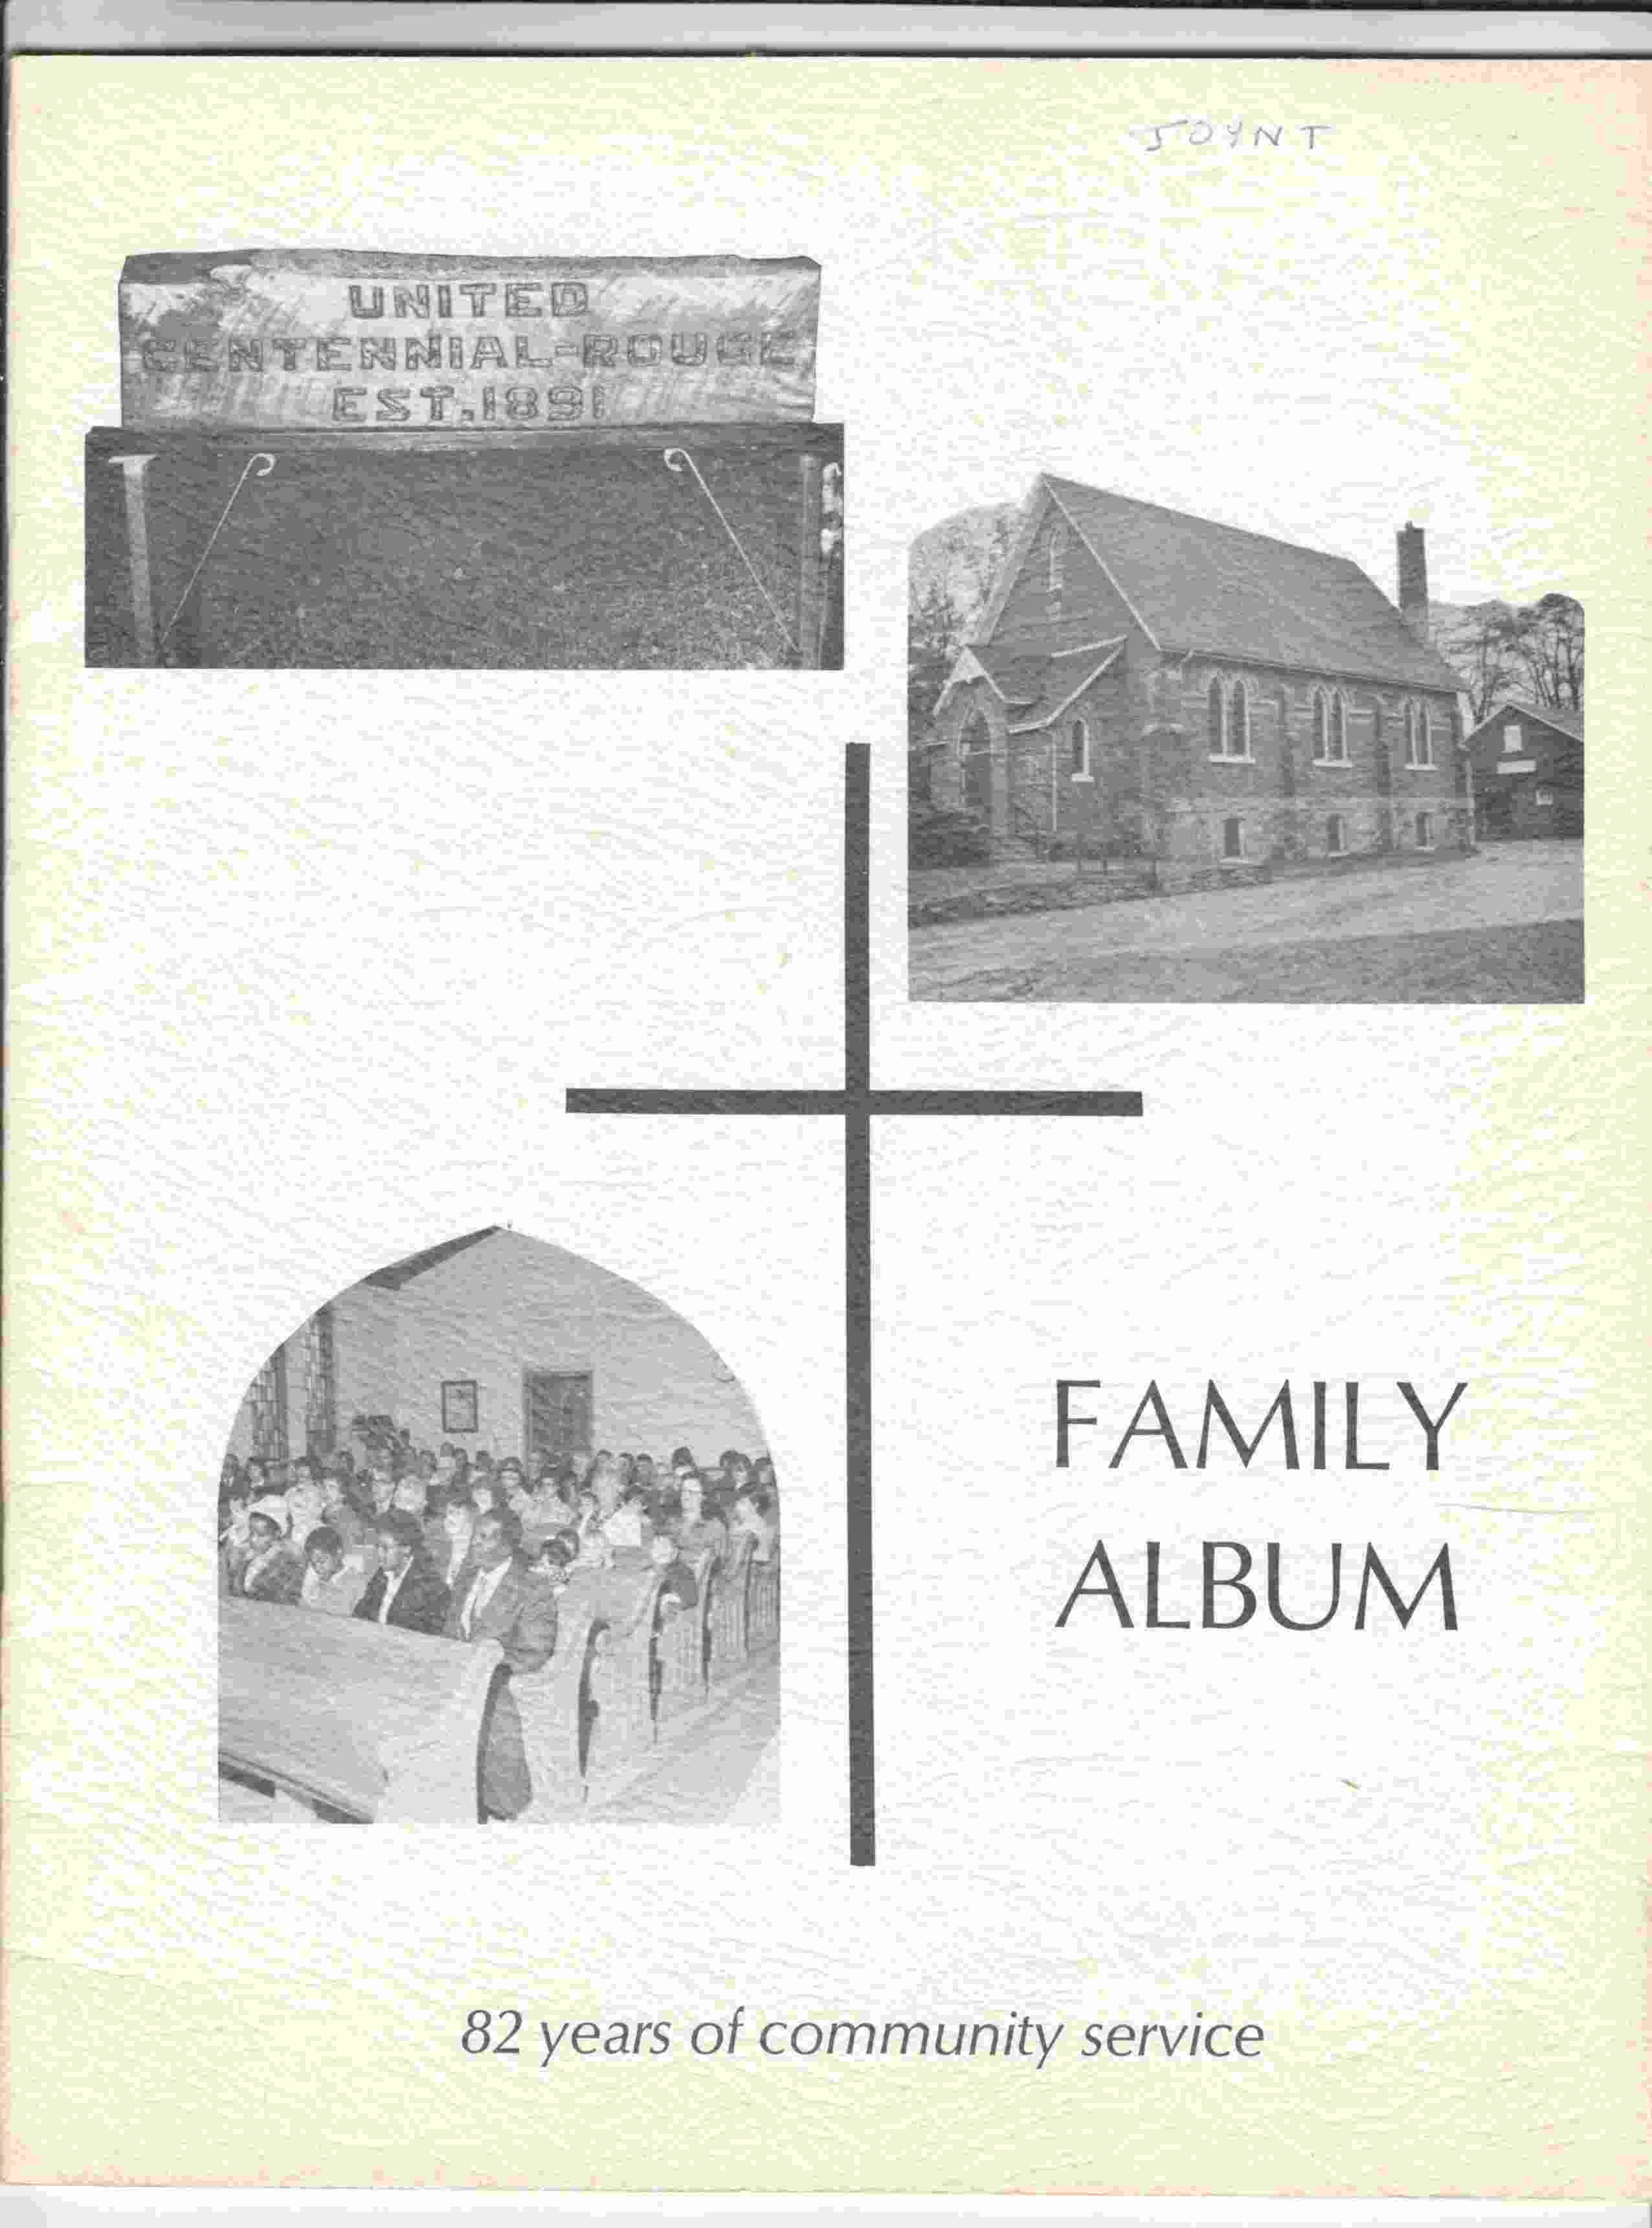 Image for Cantennial-Rouge United Church Family Album 1973